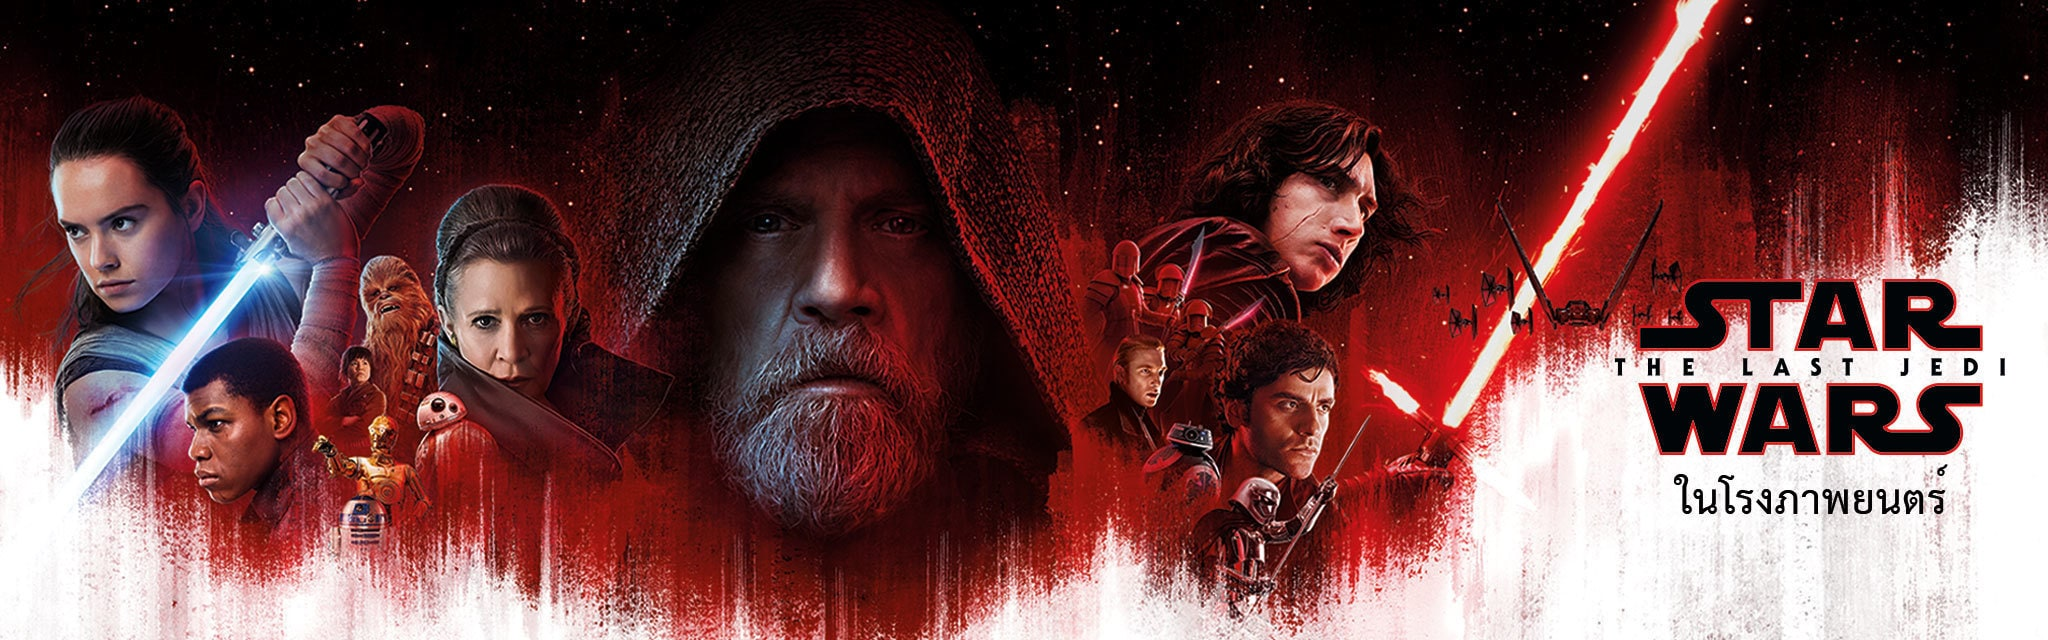 Star Wars - The Last Jedi - In Cinemas Now - TH